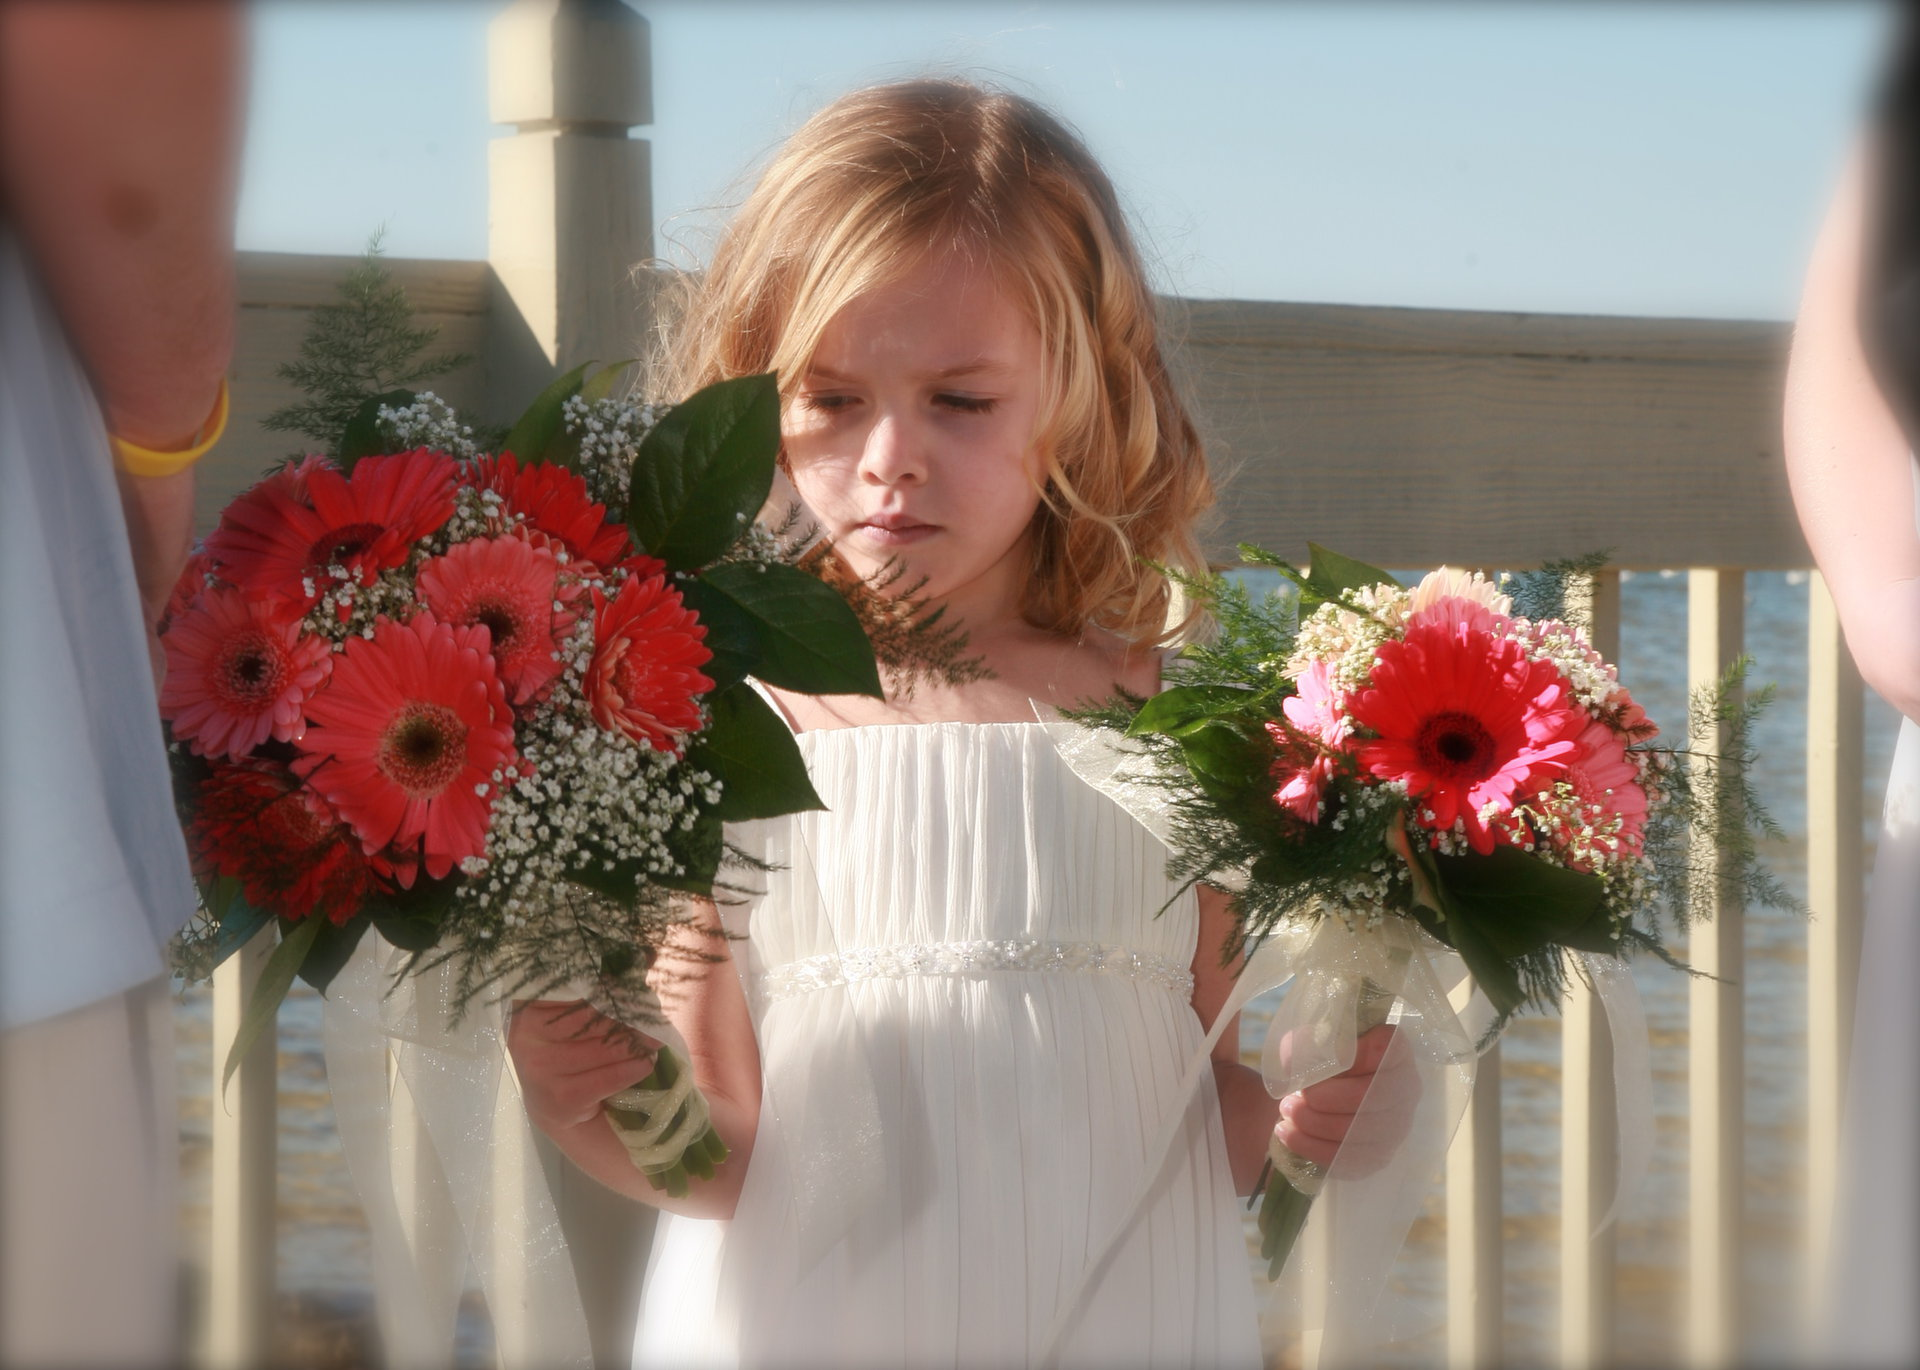 Little Girl with Bouquets, Florida